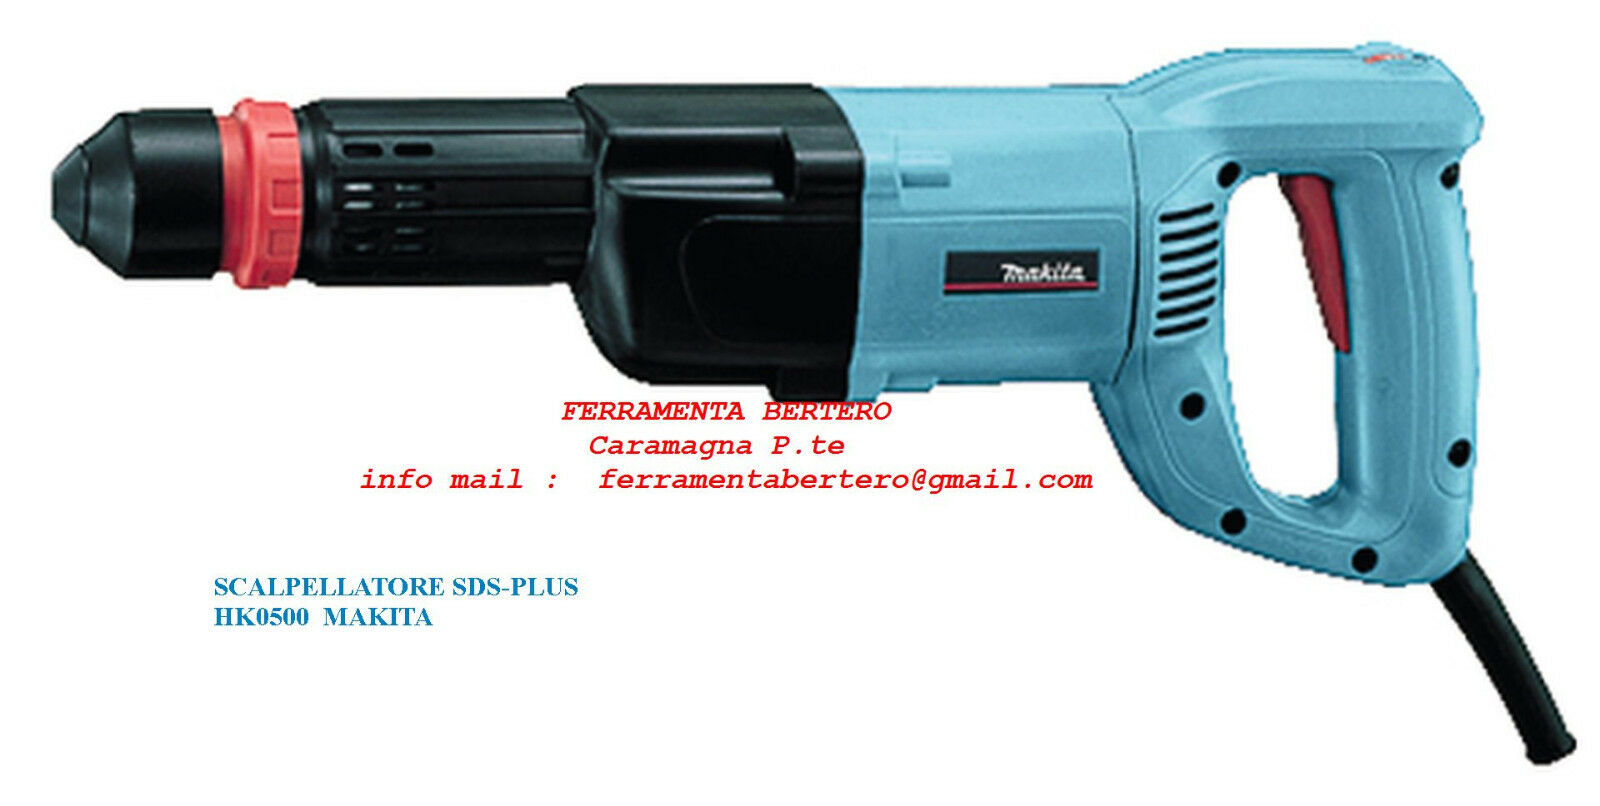 MAKITA HK0500 SCALPELLATORE SDS-PLUS 550 WATT